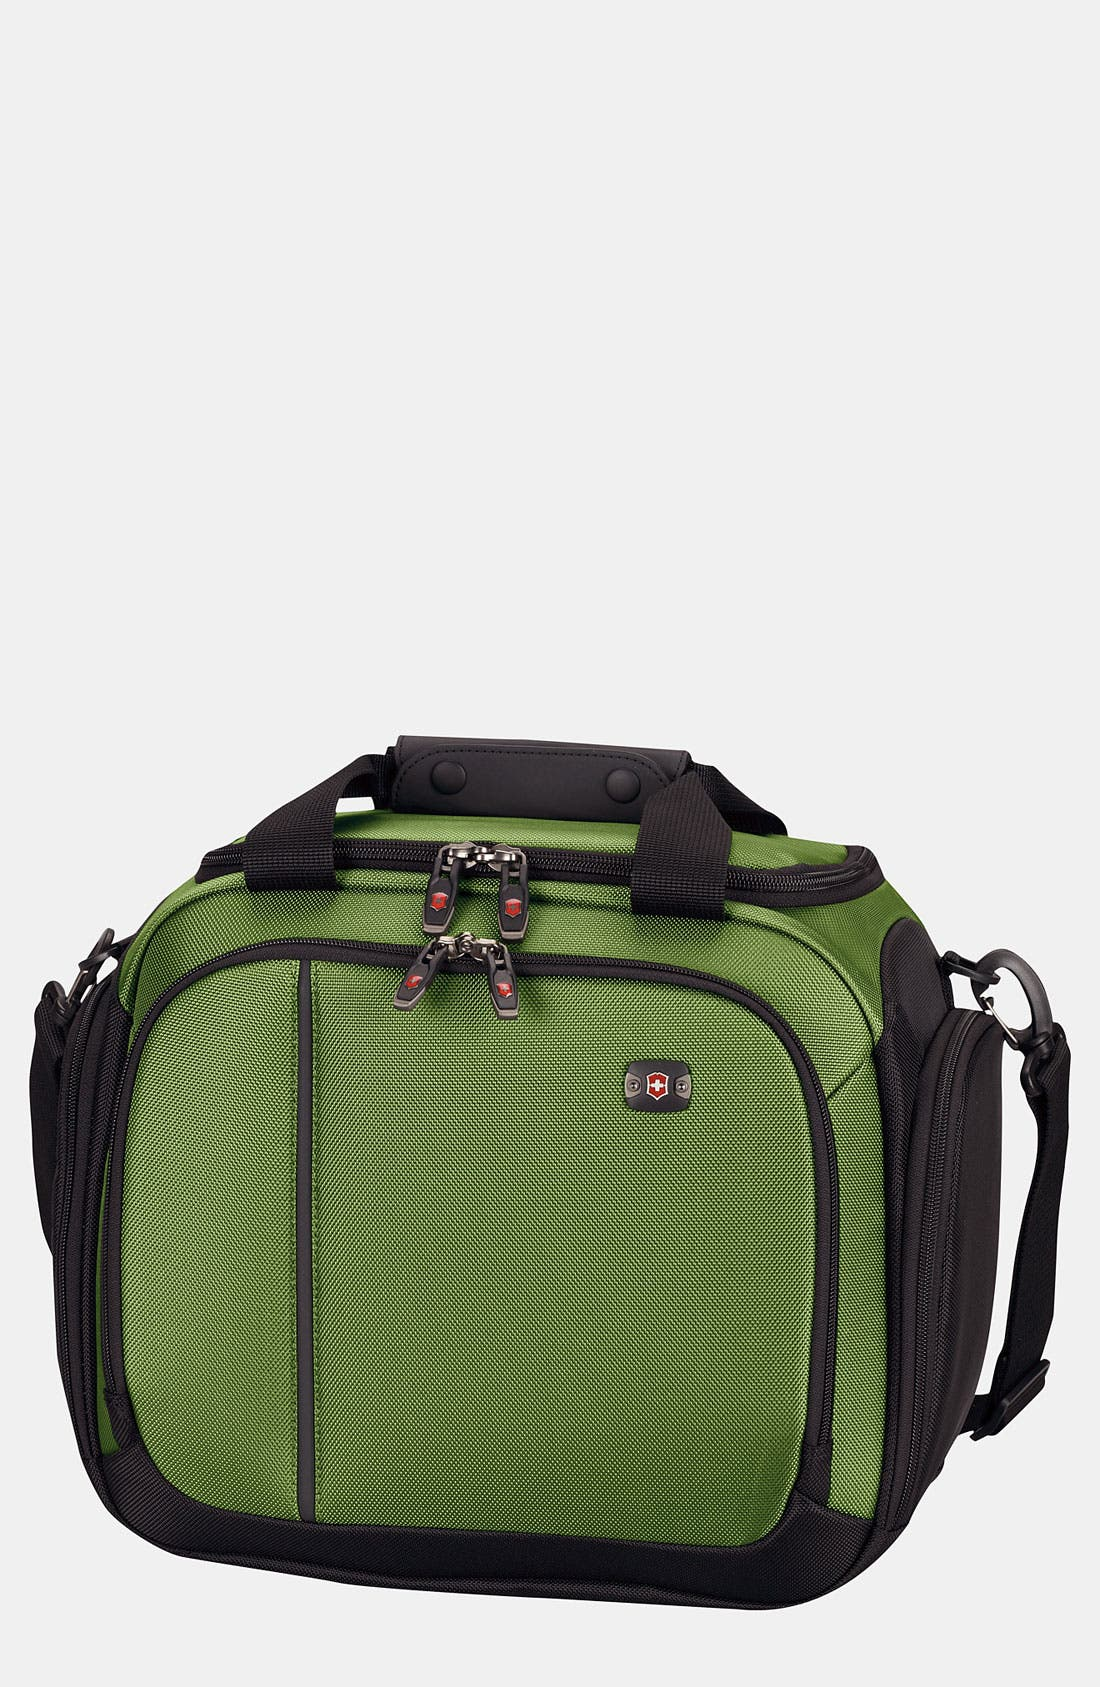 Alternate Image 1 Selected - Victorinox Swiss Army® 'Deluxe' Travel Tote Bag